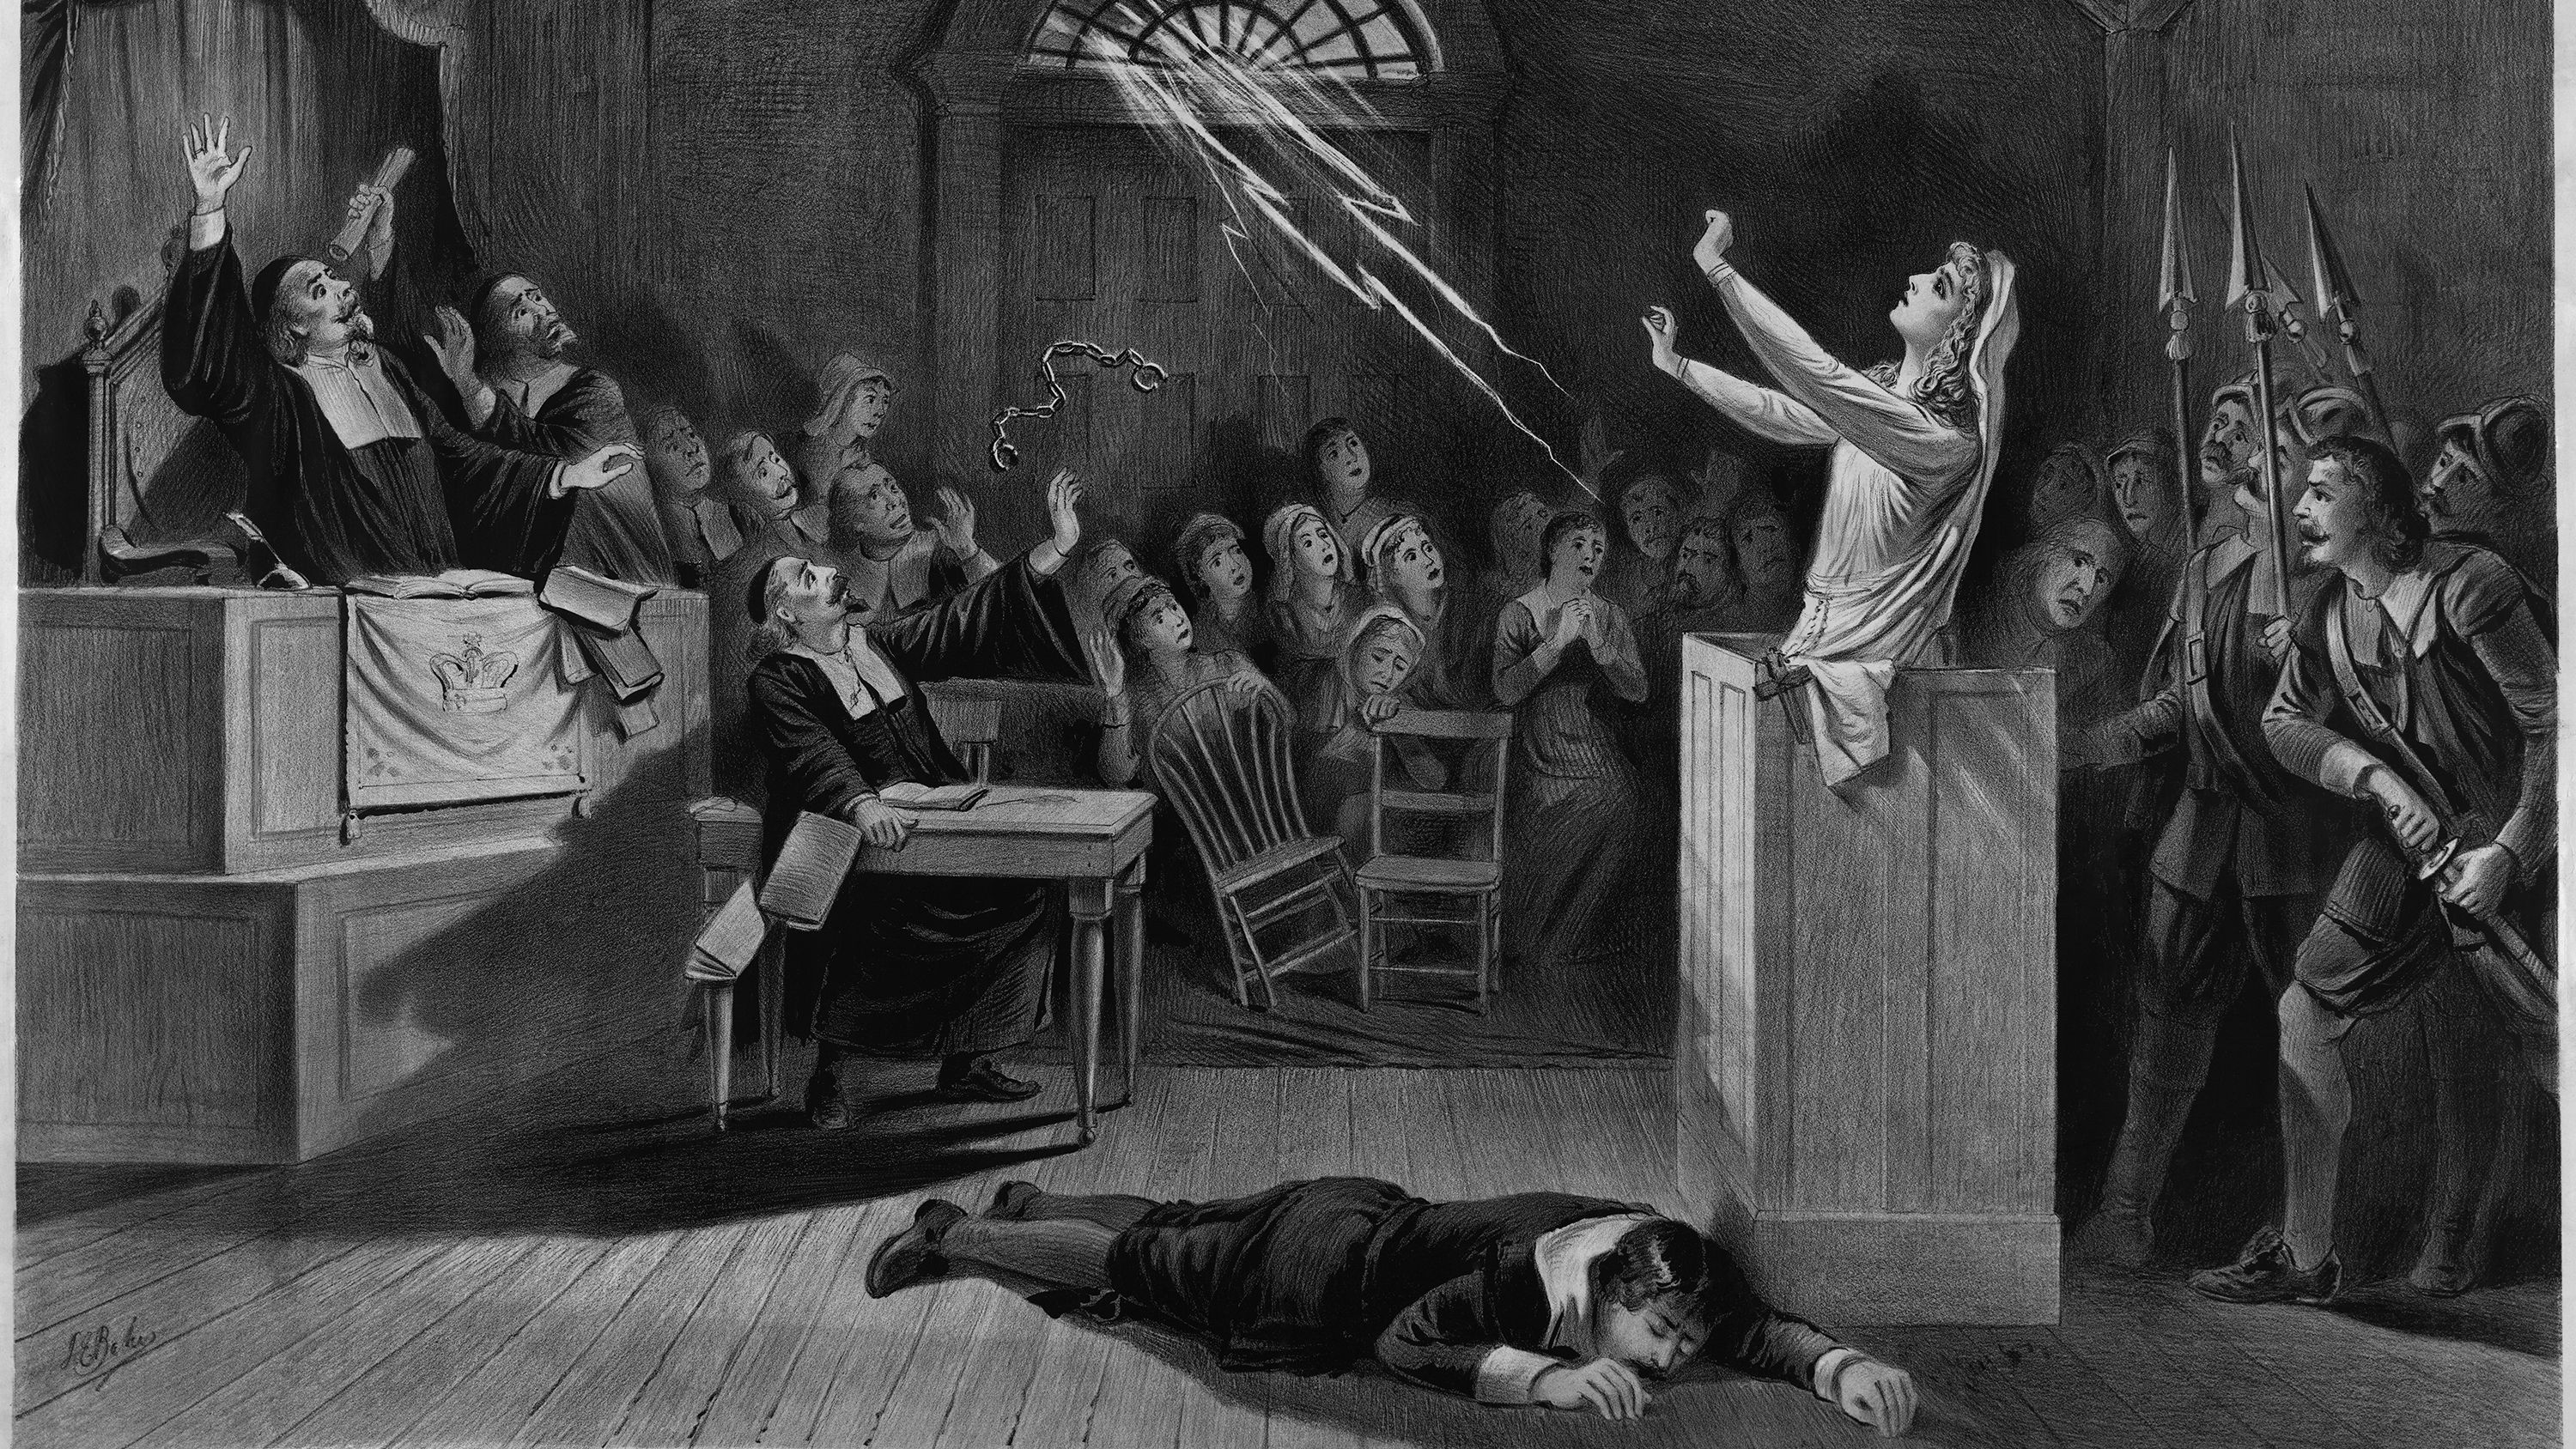 11 Facts About the Salem Witch Trials